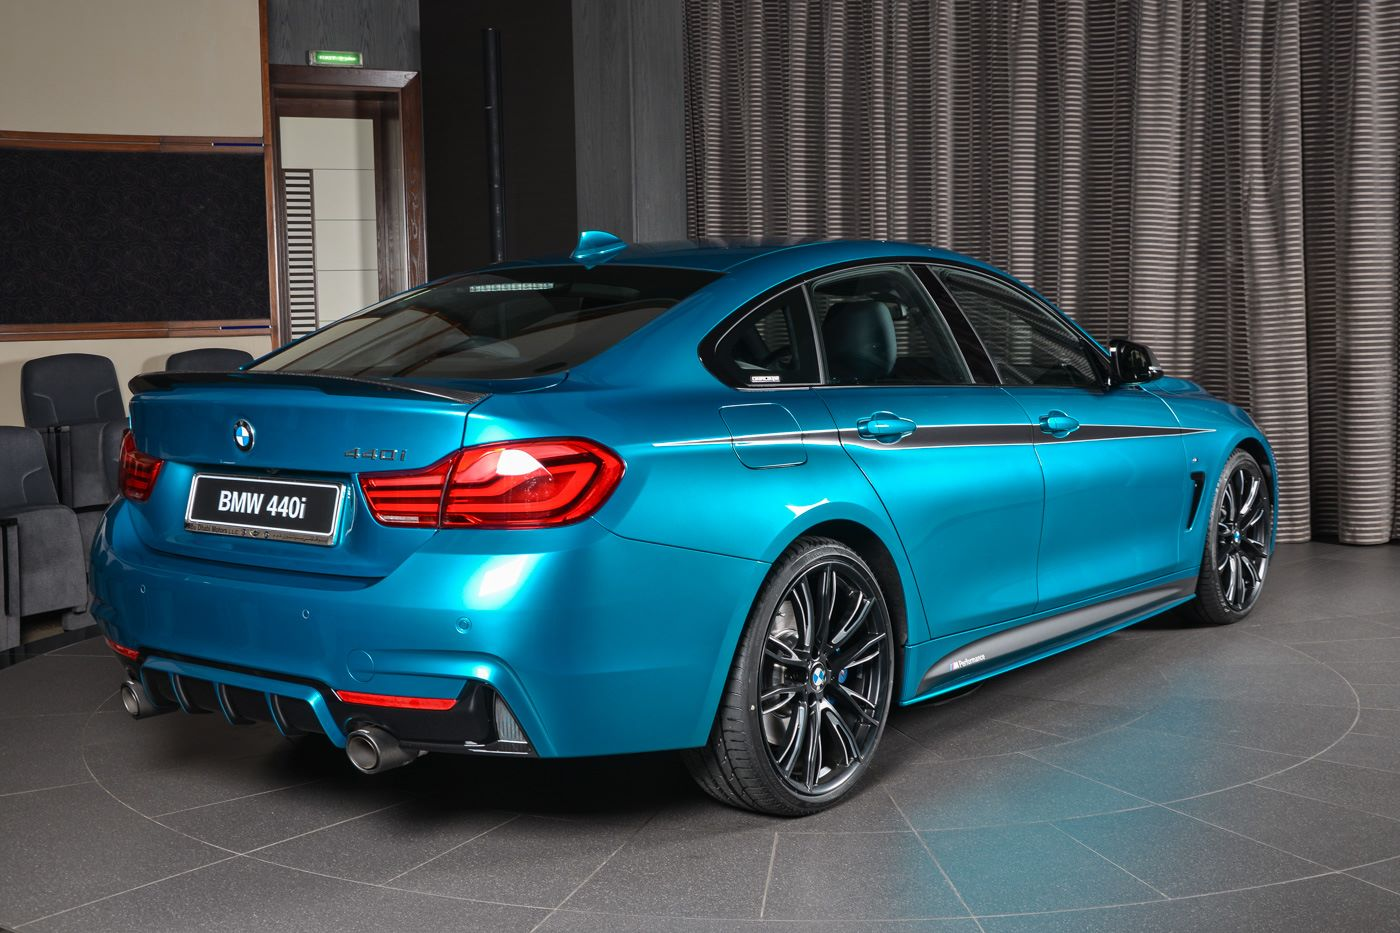 Bmw Aba Dhabi Gives 440i Gc Full M Performance Options Performancedrive